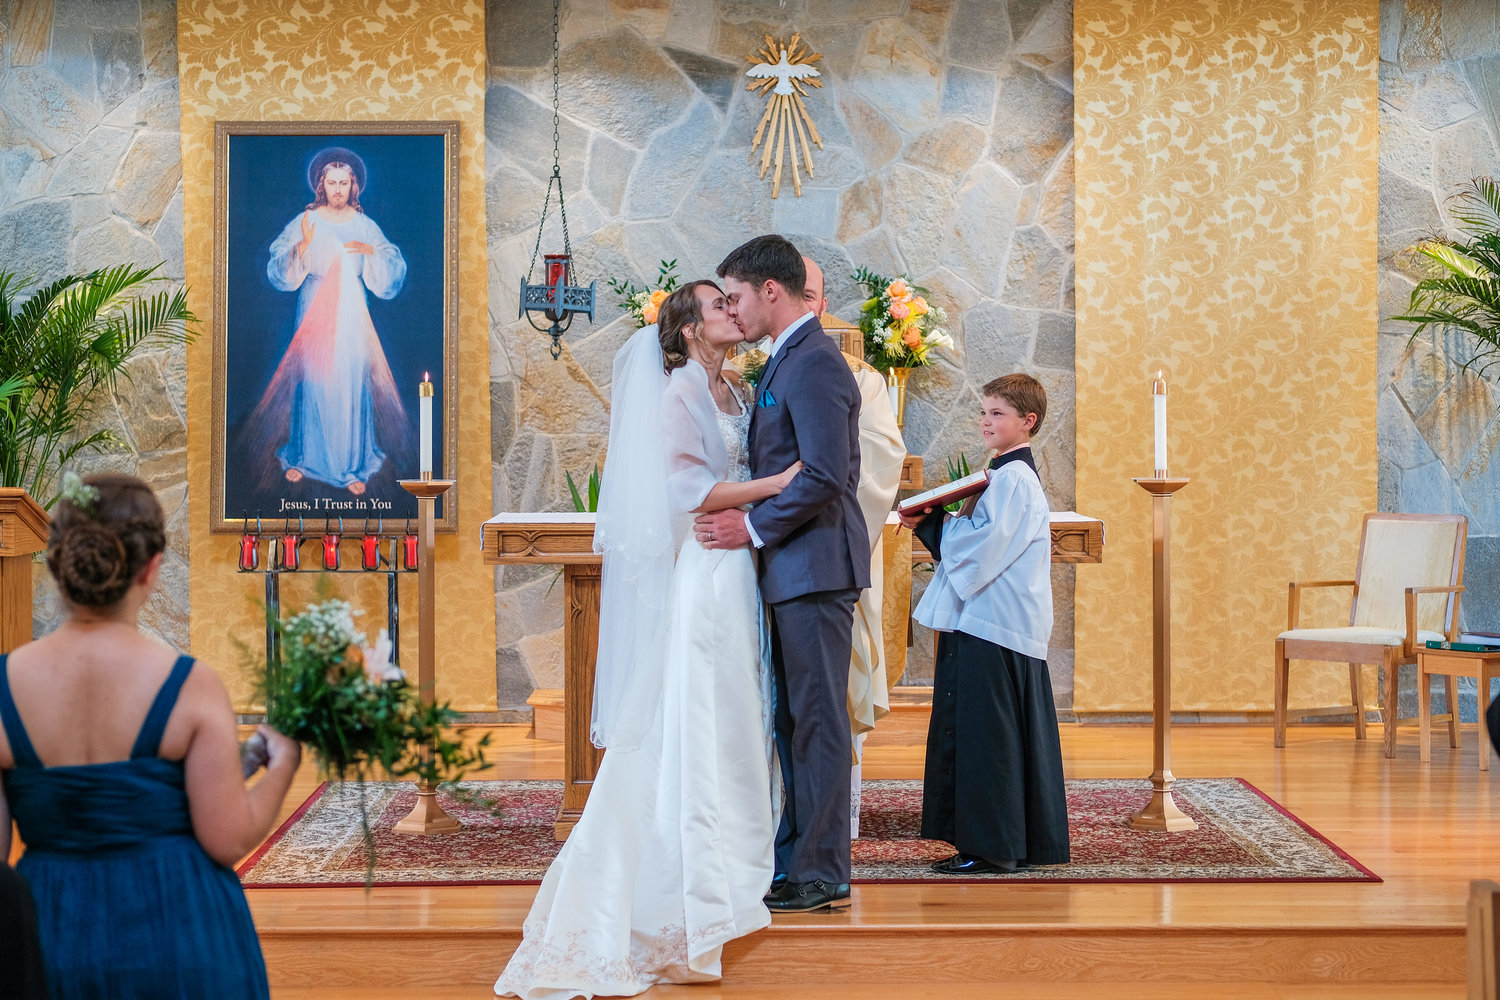 Catholic Wedding Traditions.Traditional Catholic Wedding In Southern Nh With Maria And